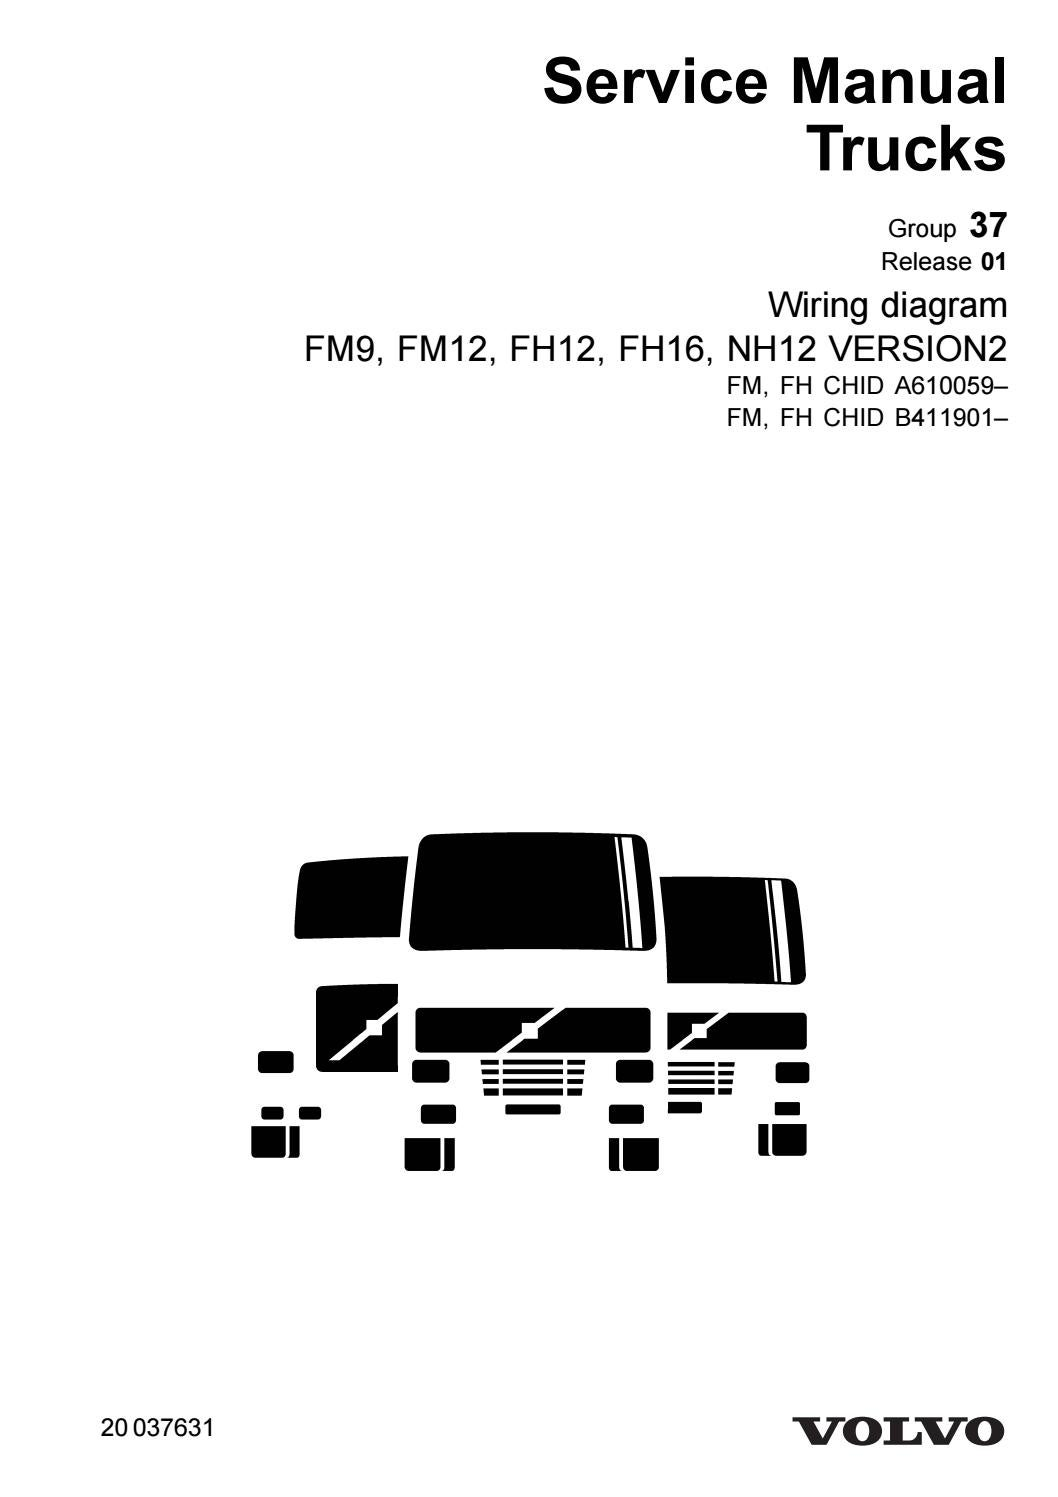 Volvo Trucks Wiring Diagrams Service Manual FM9 FM12 FH12 FH16 NH12  VERSION2 FM FH CHID A610059 FM F by heydownloads - issuu | Volvo Truck Ac Wiring Schematics |  | Issuu